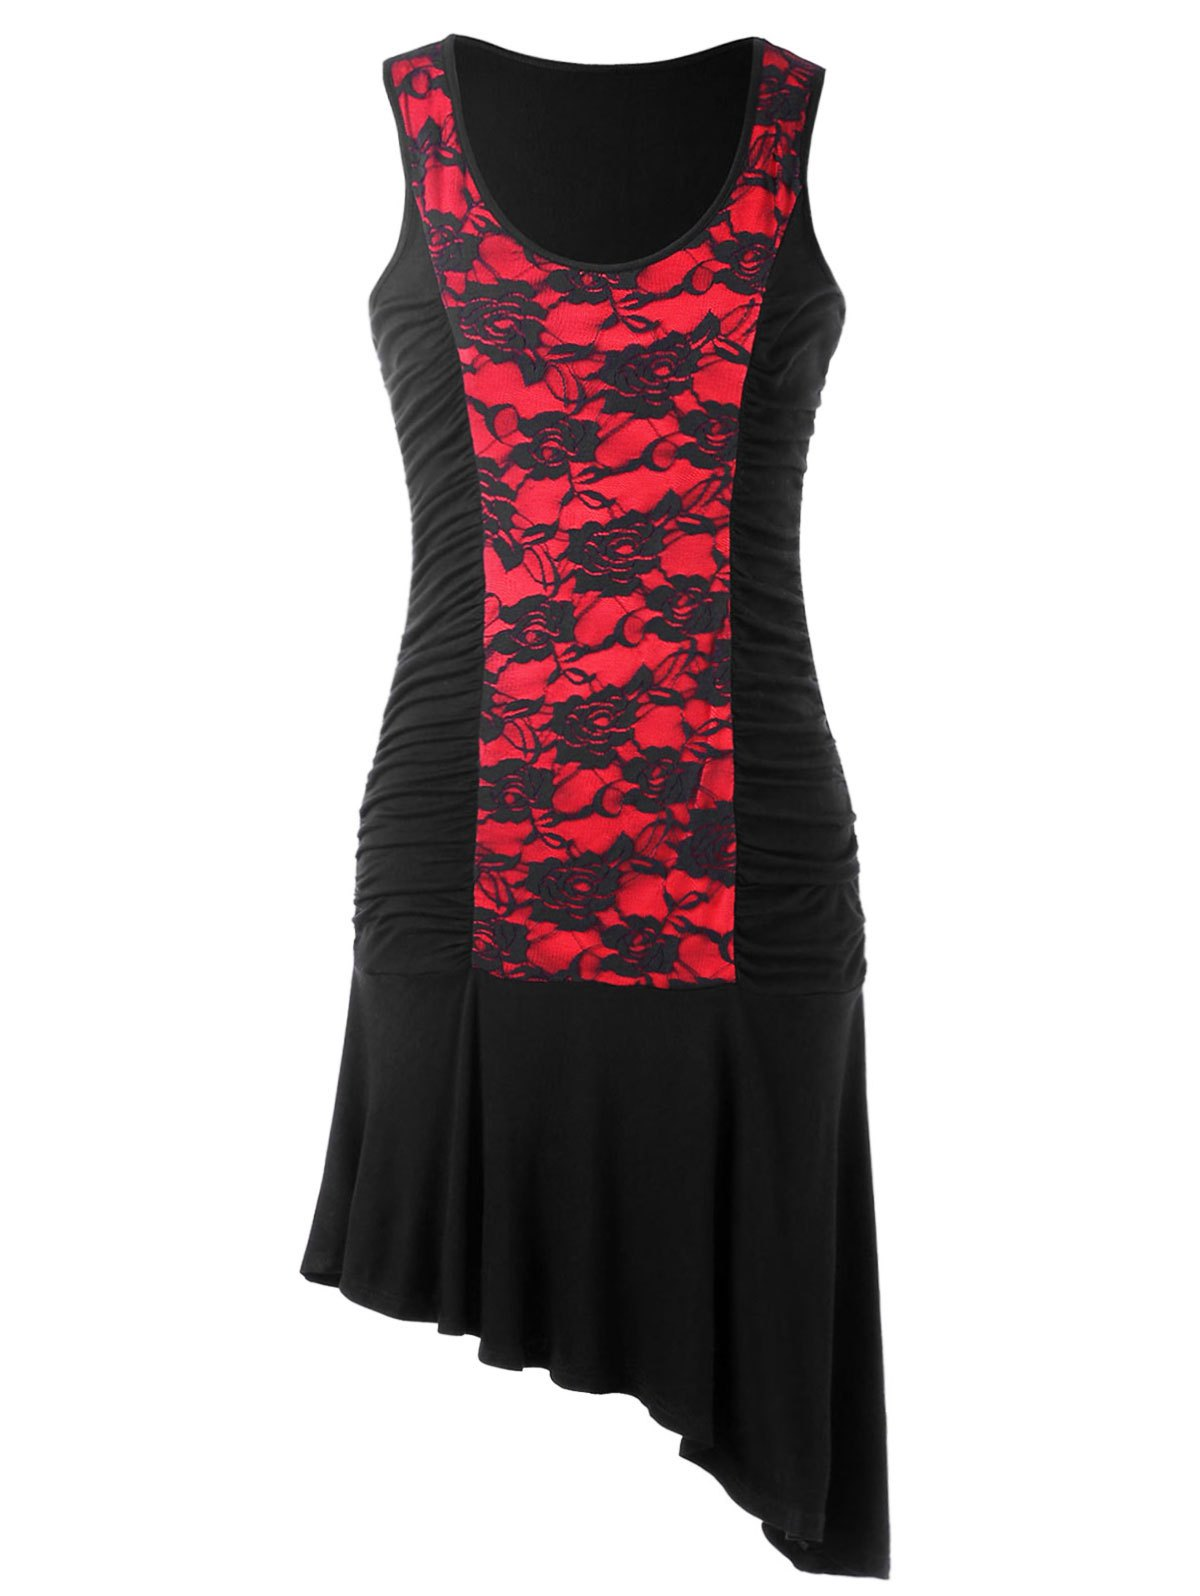 U Neck Sleeveless Asymmetric Dress - RED/BLACK M